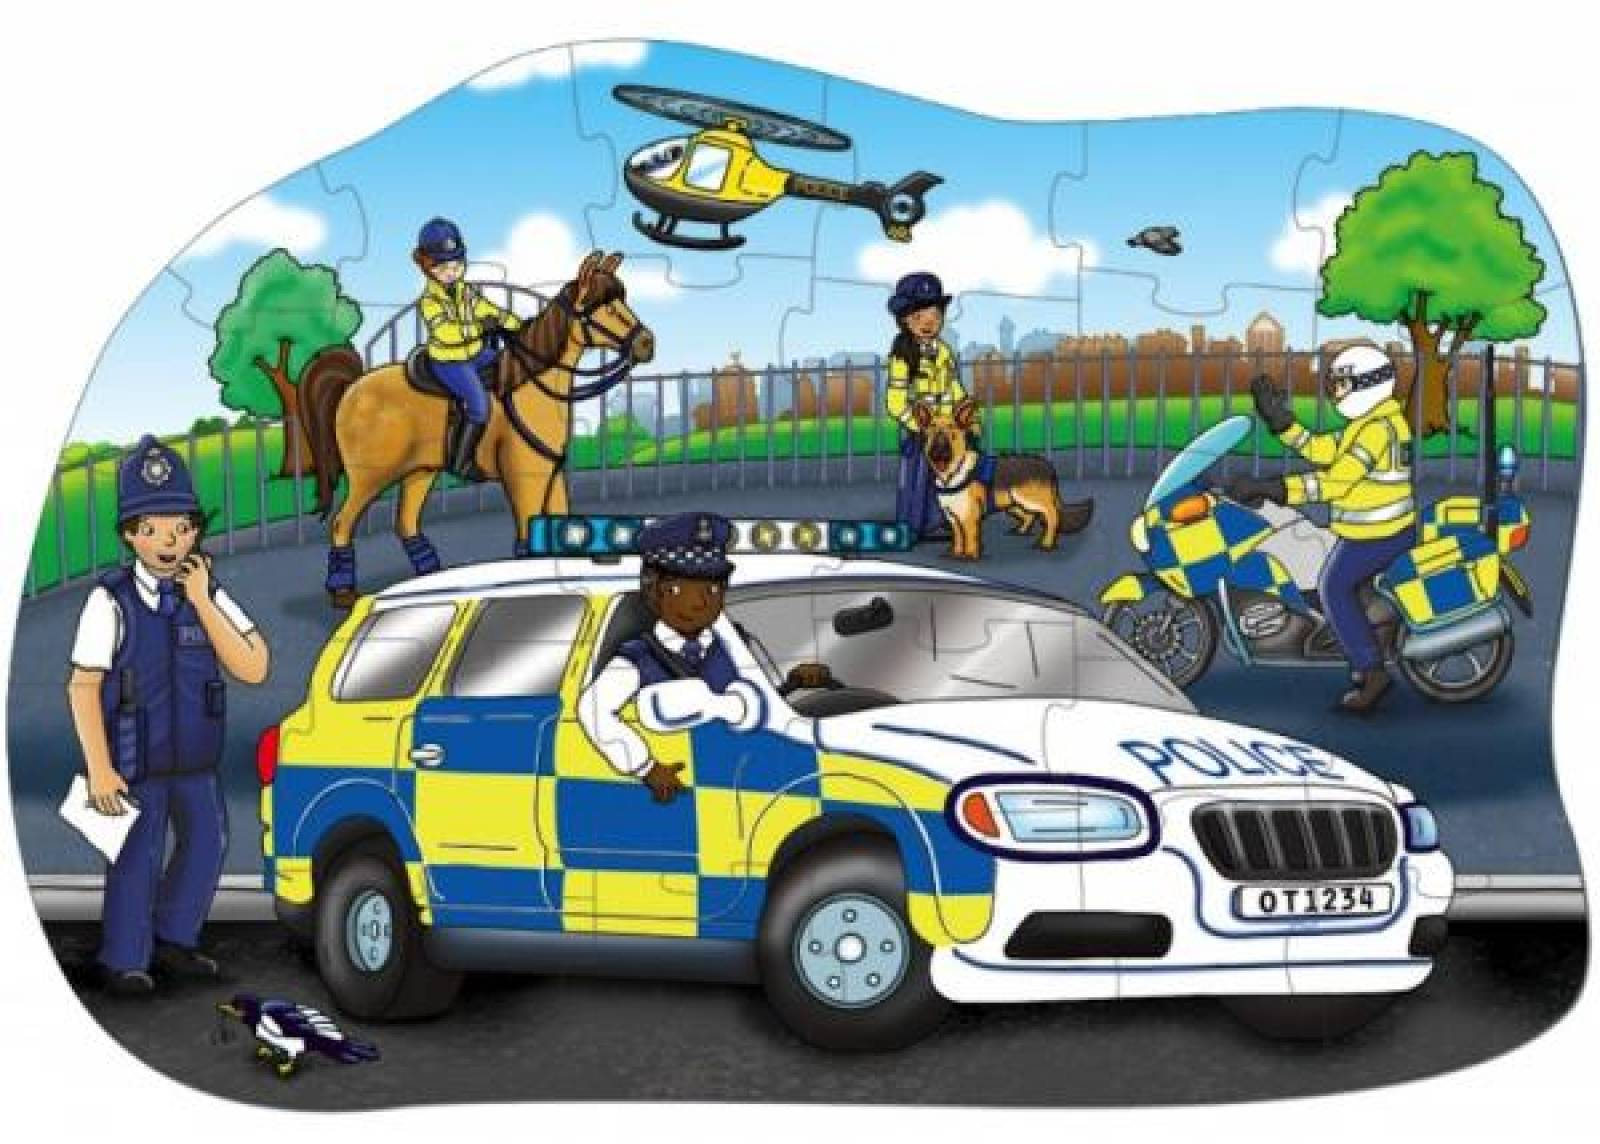 Big Police Car Puzzle Jigsaw By Orchard Toys 2-5yrs